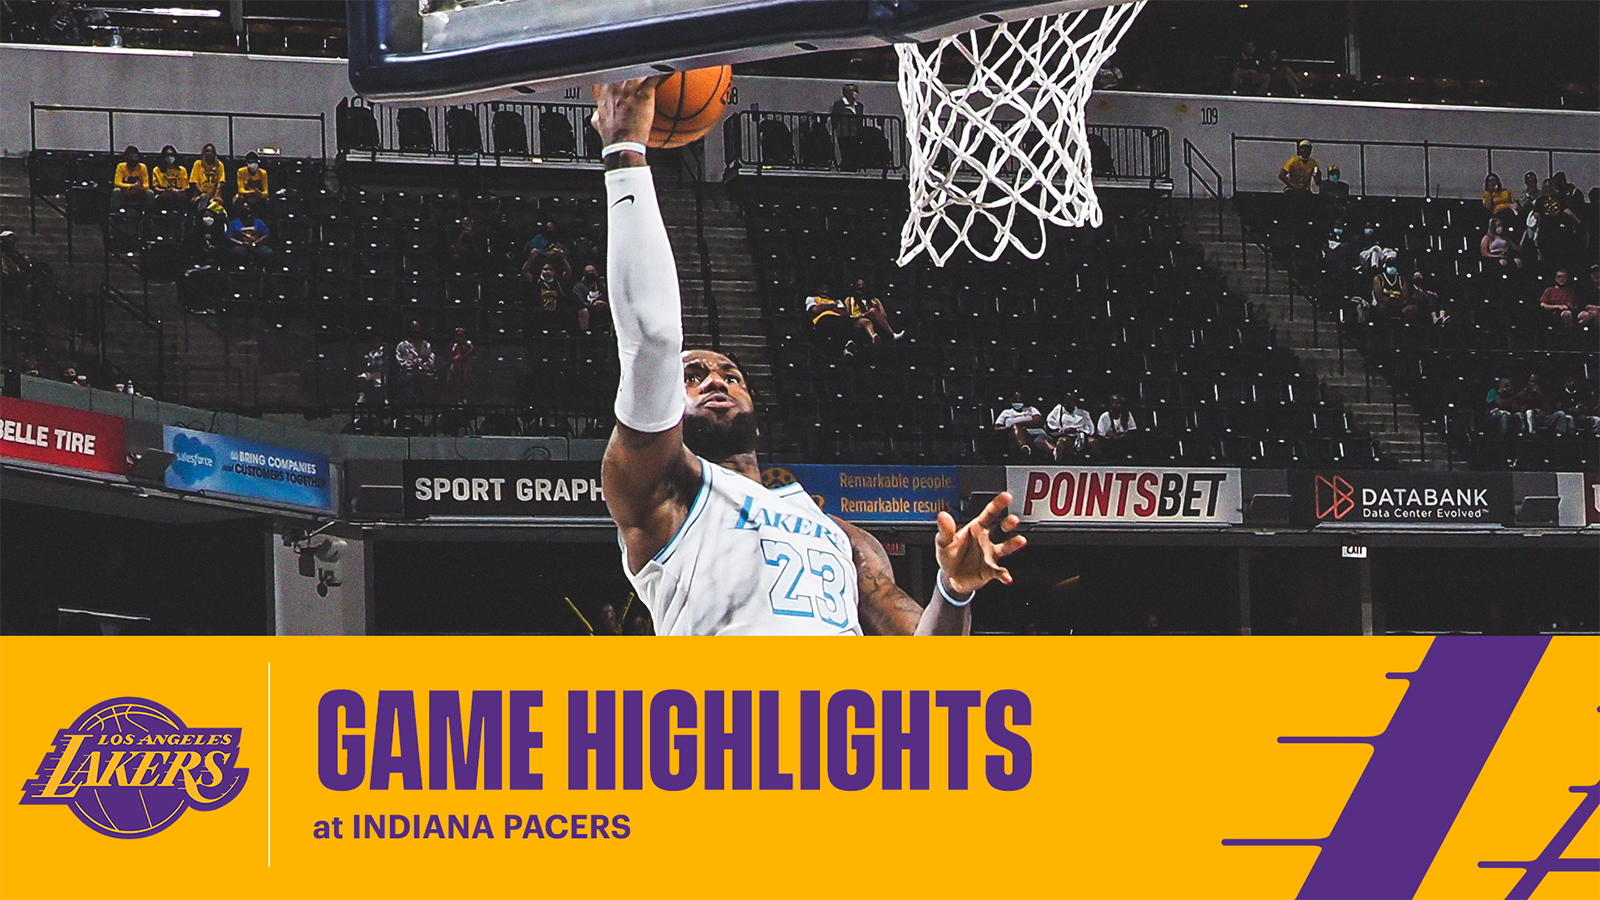 HIGHLIGHTS | LeBron James (24 pts, 8 ast, 7 reb) at Indiana Pacers